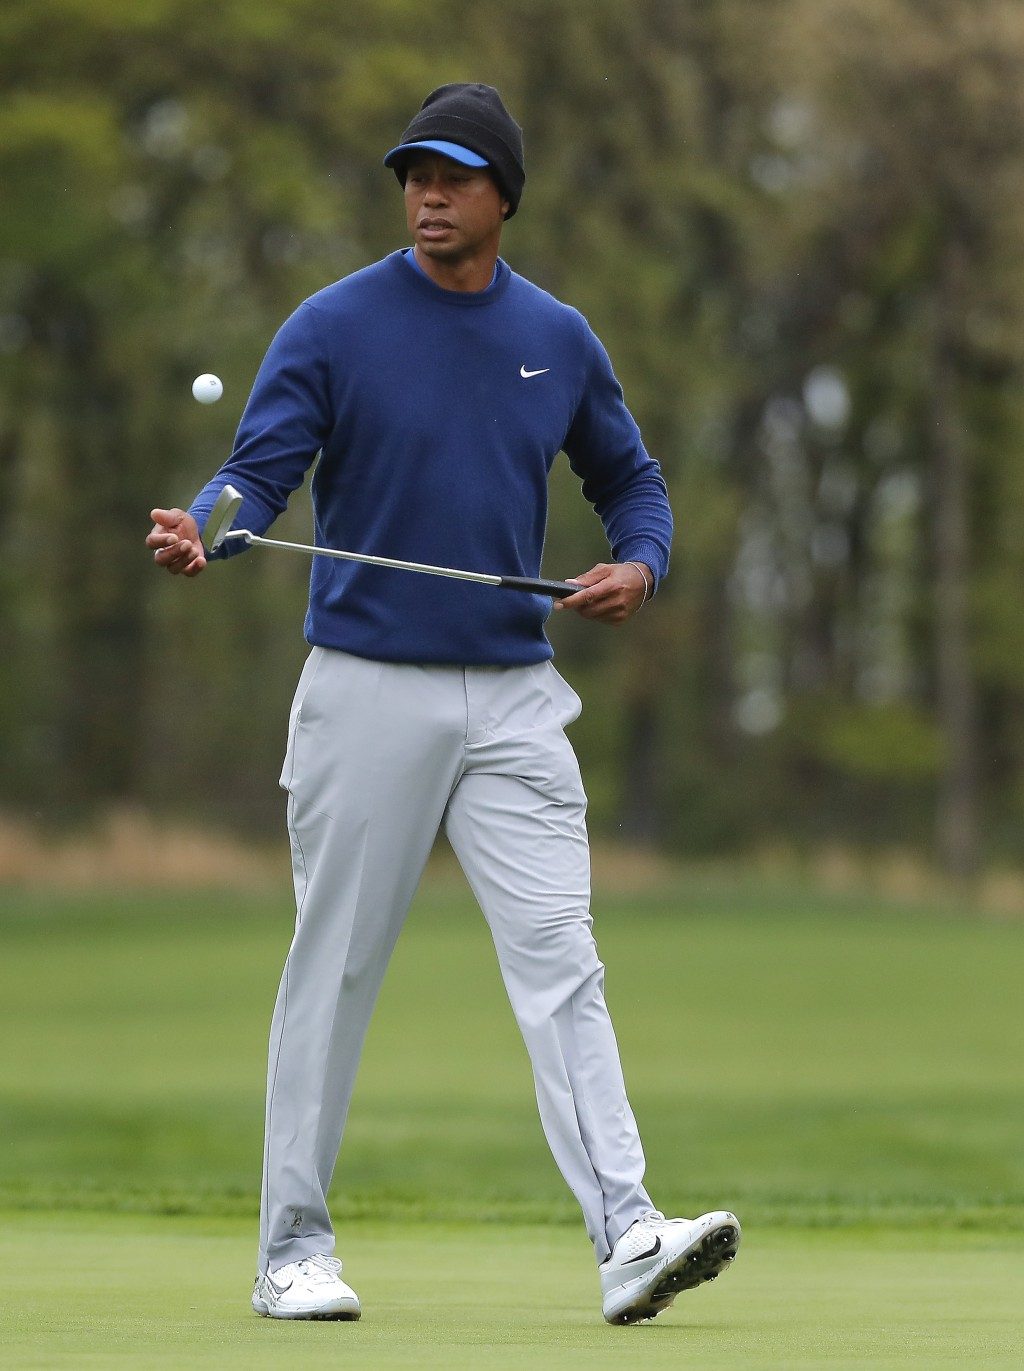 Tiger Woods flips his ball as he walks along the ninth green during a practice round for the PGA Championship golf tournament, Monday, May 13, 2019, i